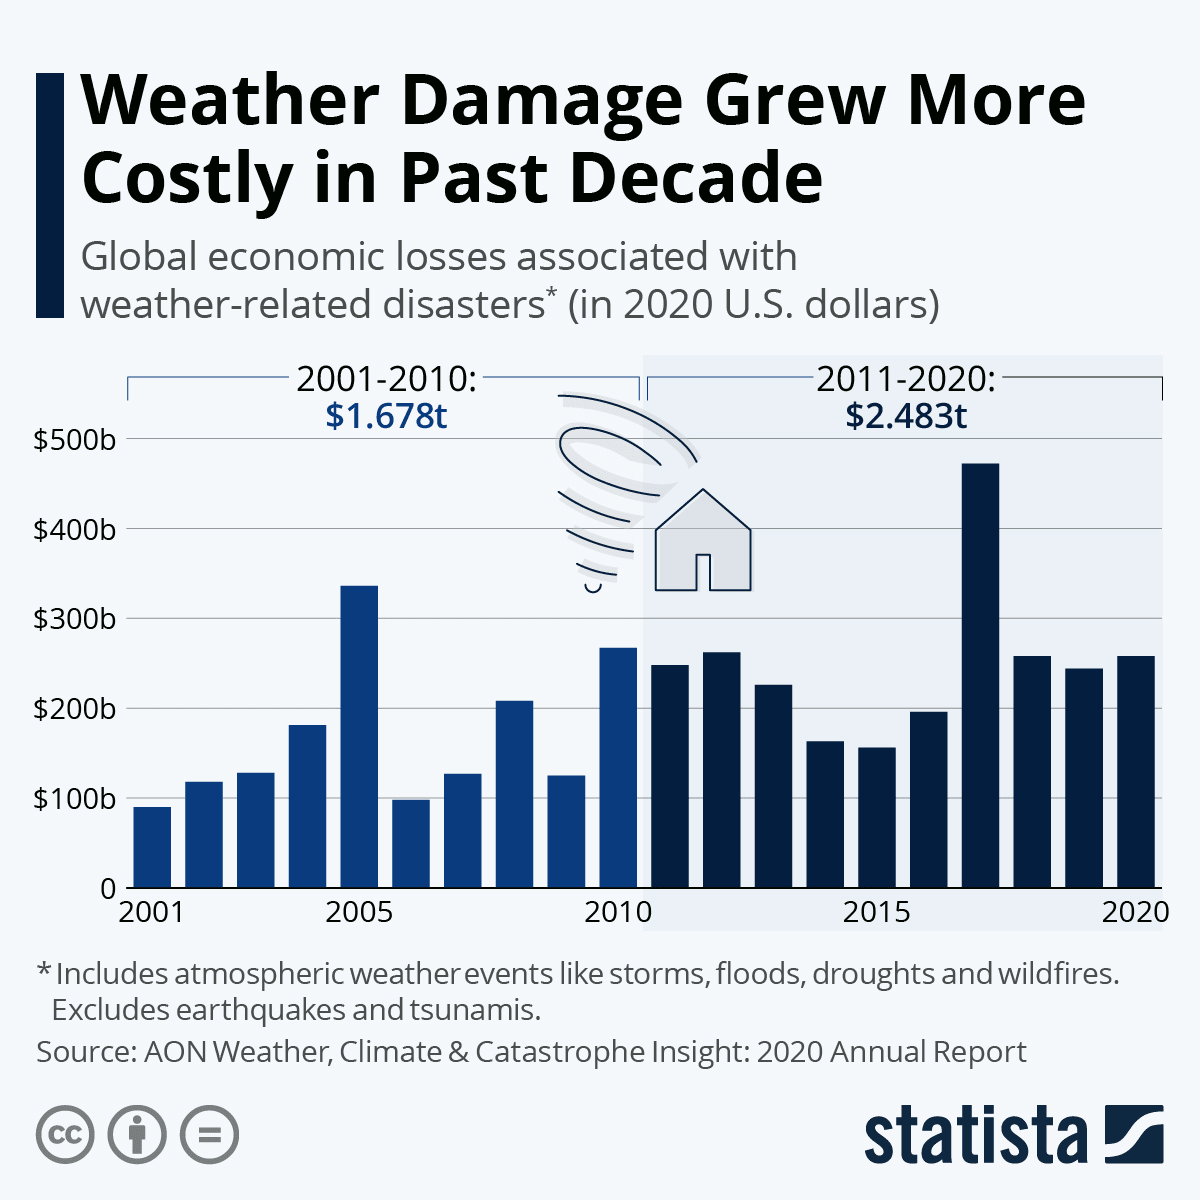 this chart shows how weather damage grew more costly in the last decade